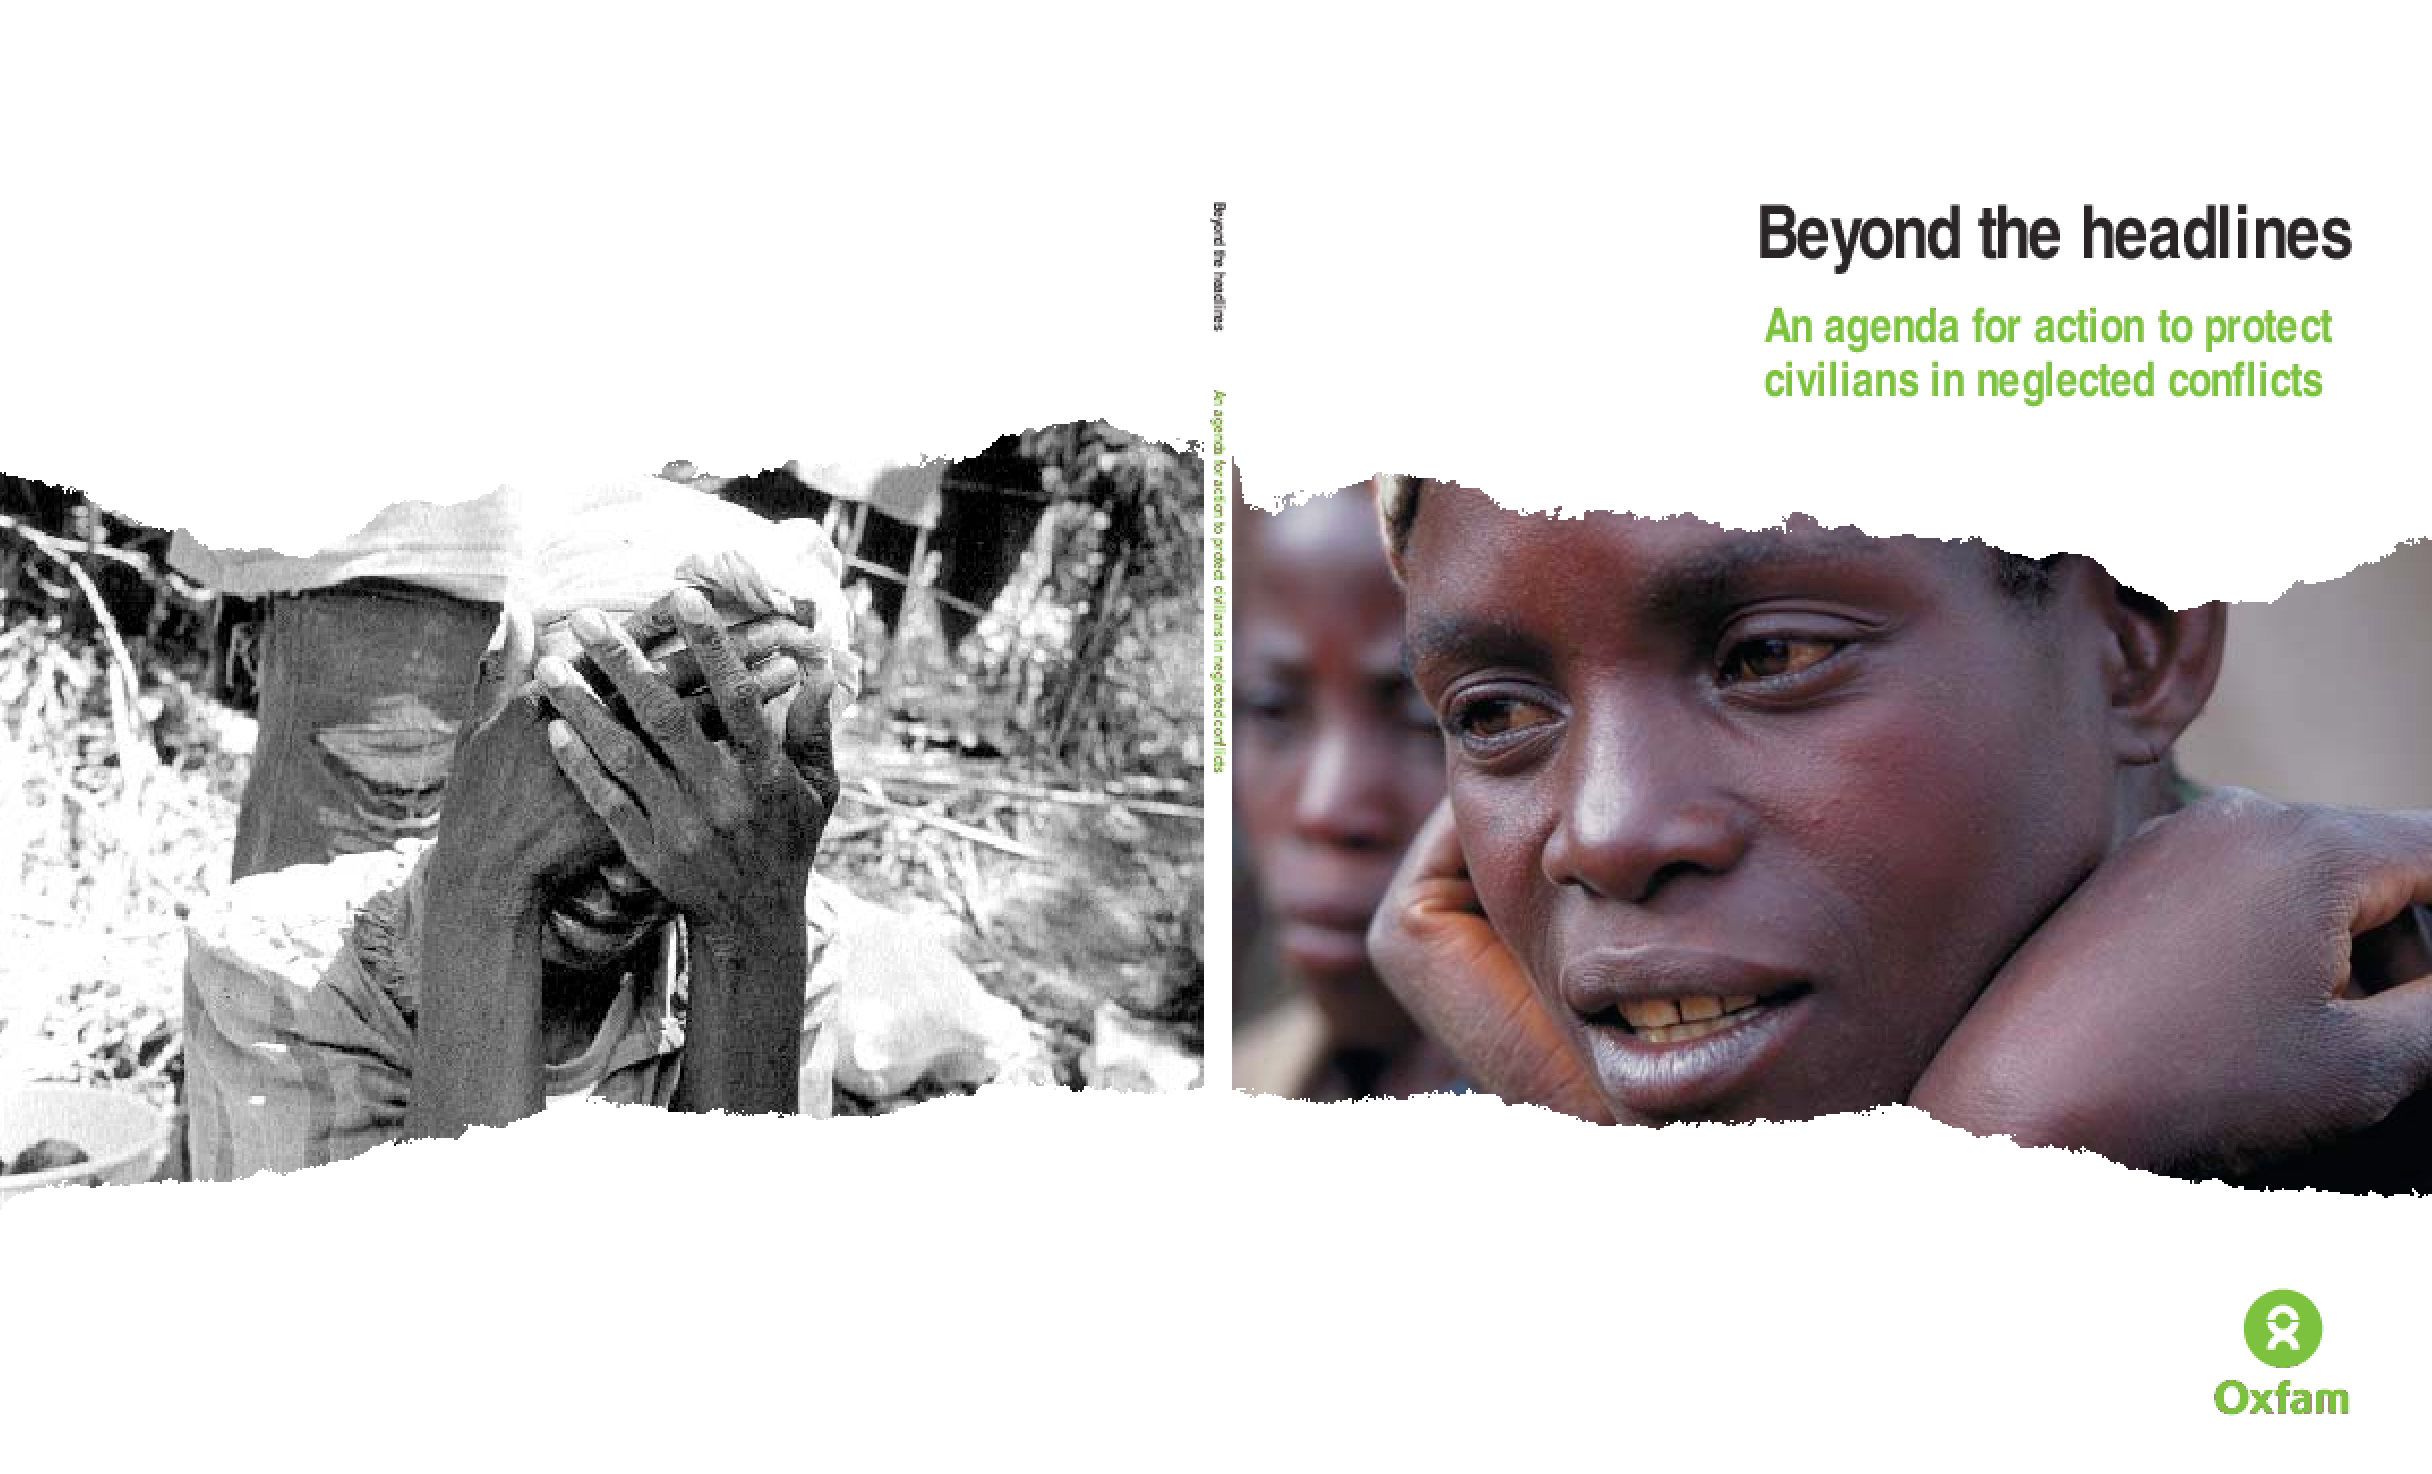 Beyond the Headlines: An agenda for action to protect civilians in neglected conflicts